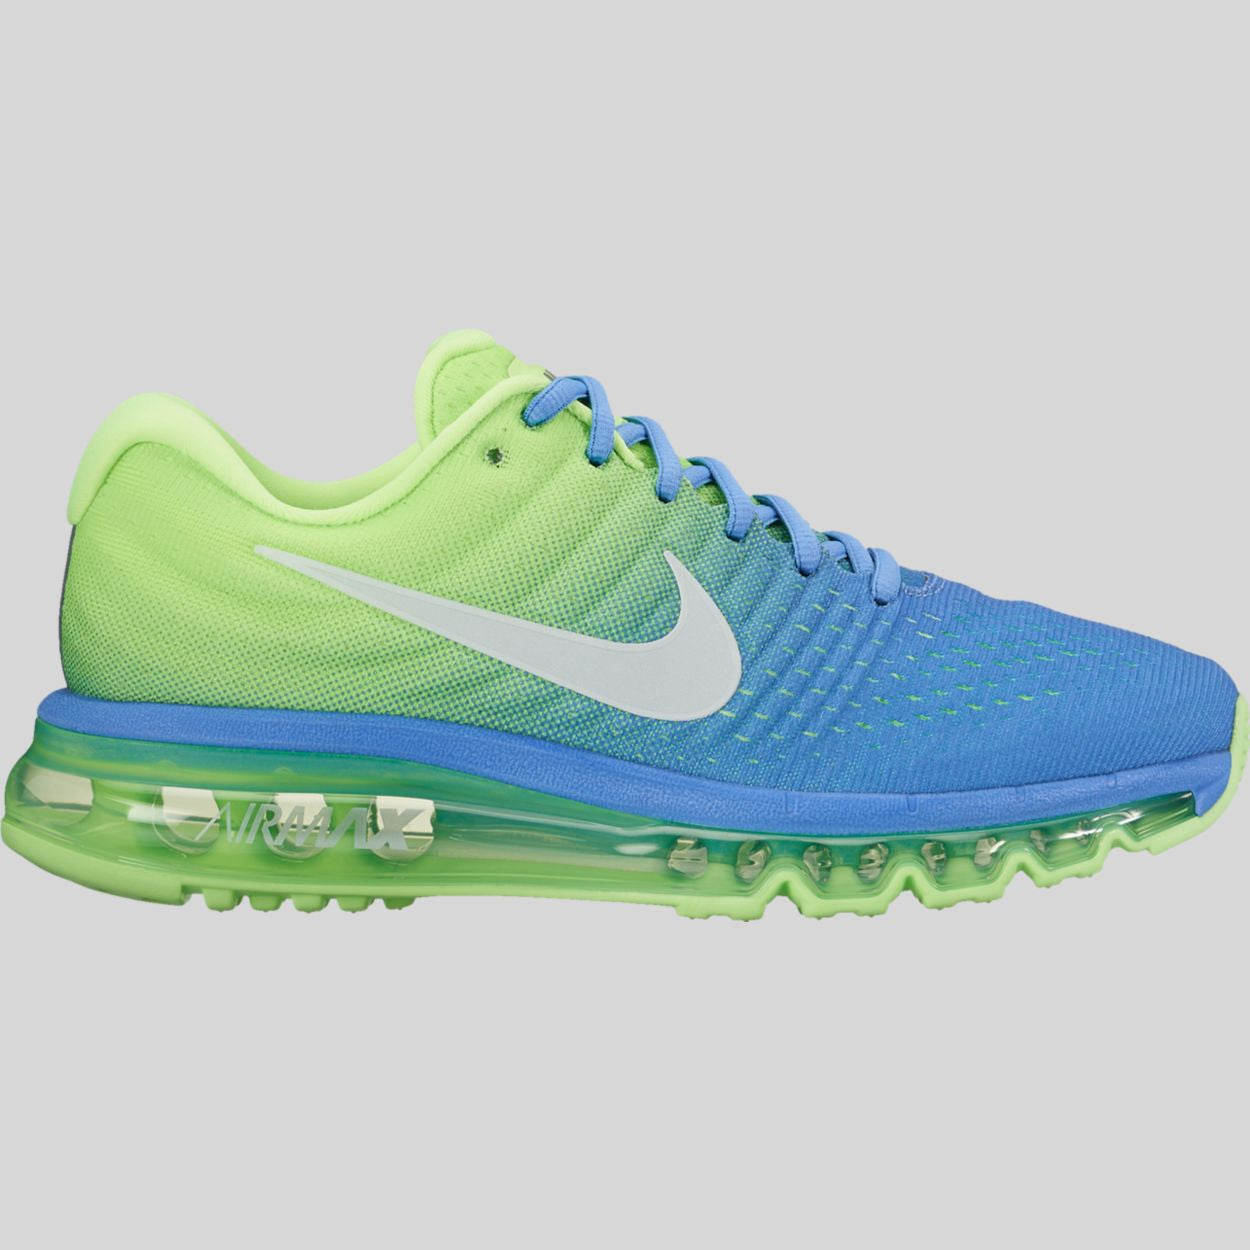 half off eacf5 d332c Nike Wmns Air Max 2017 Polar White Ghost Green